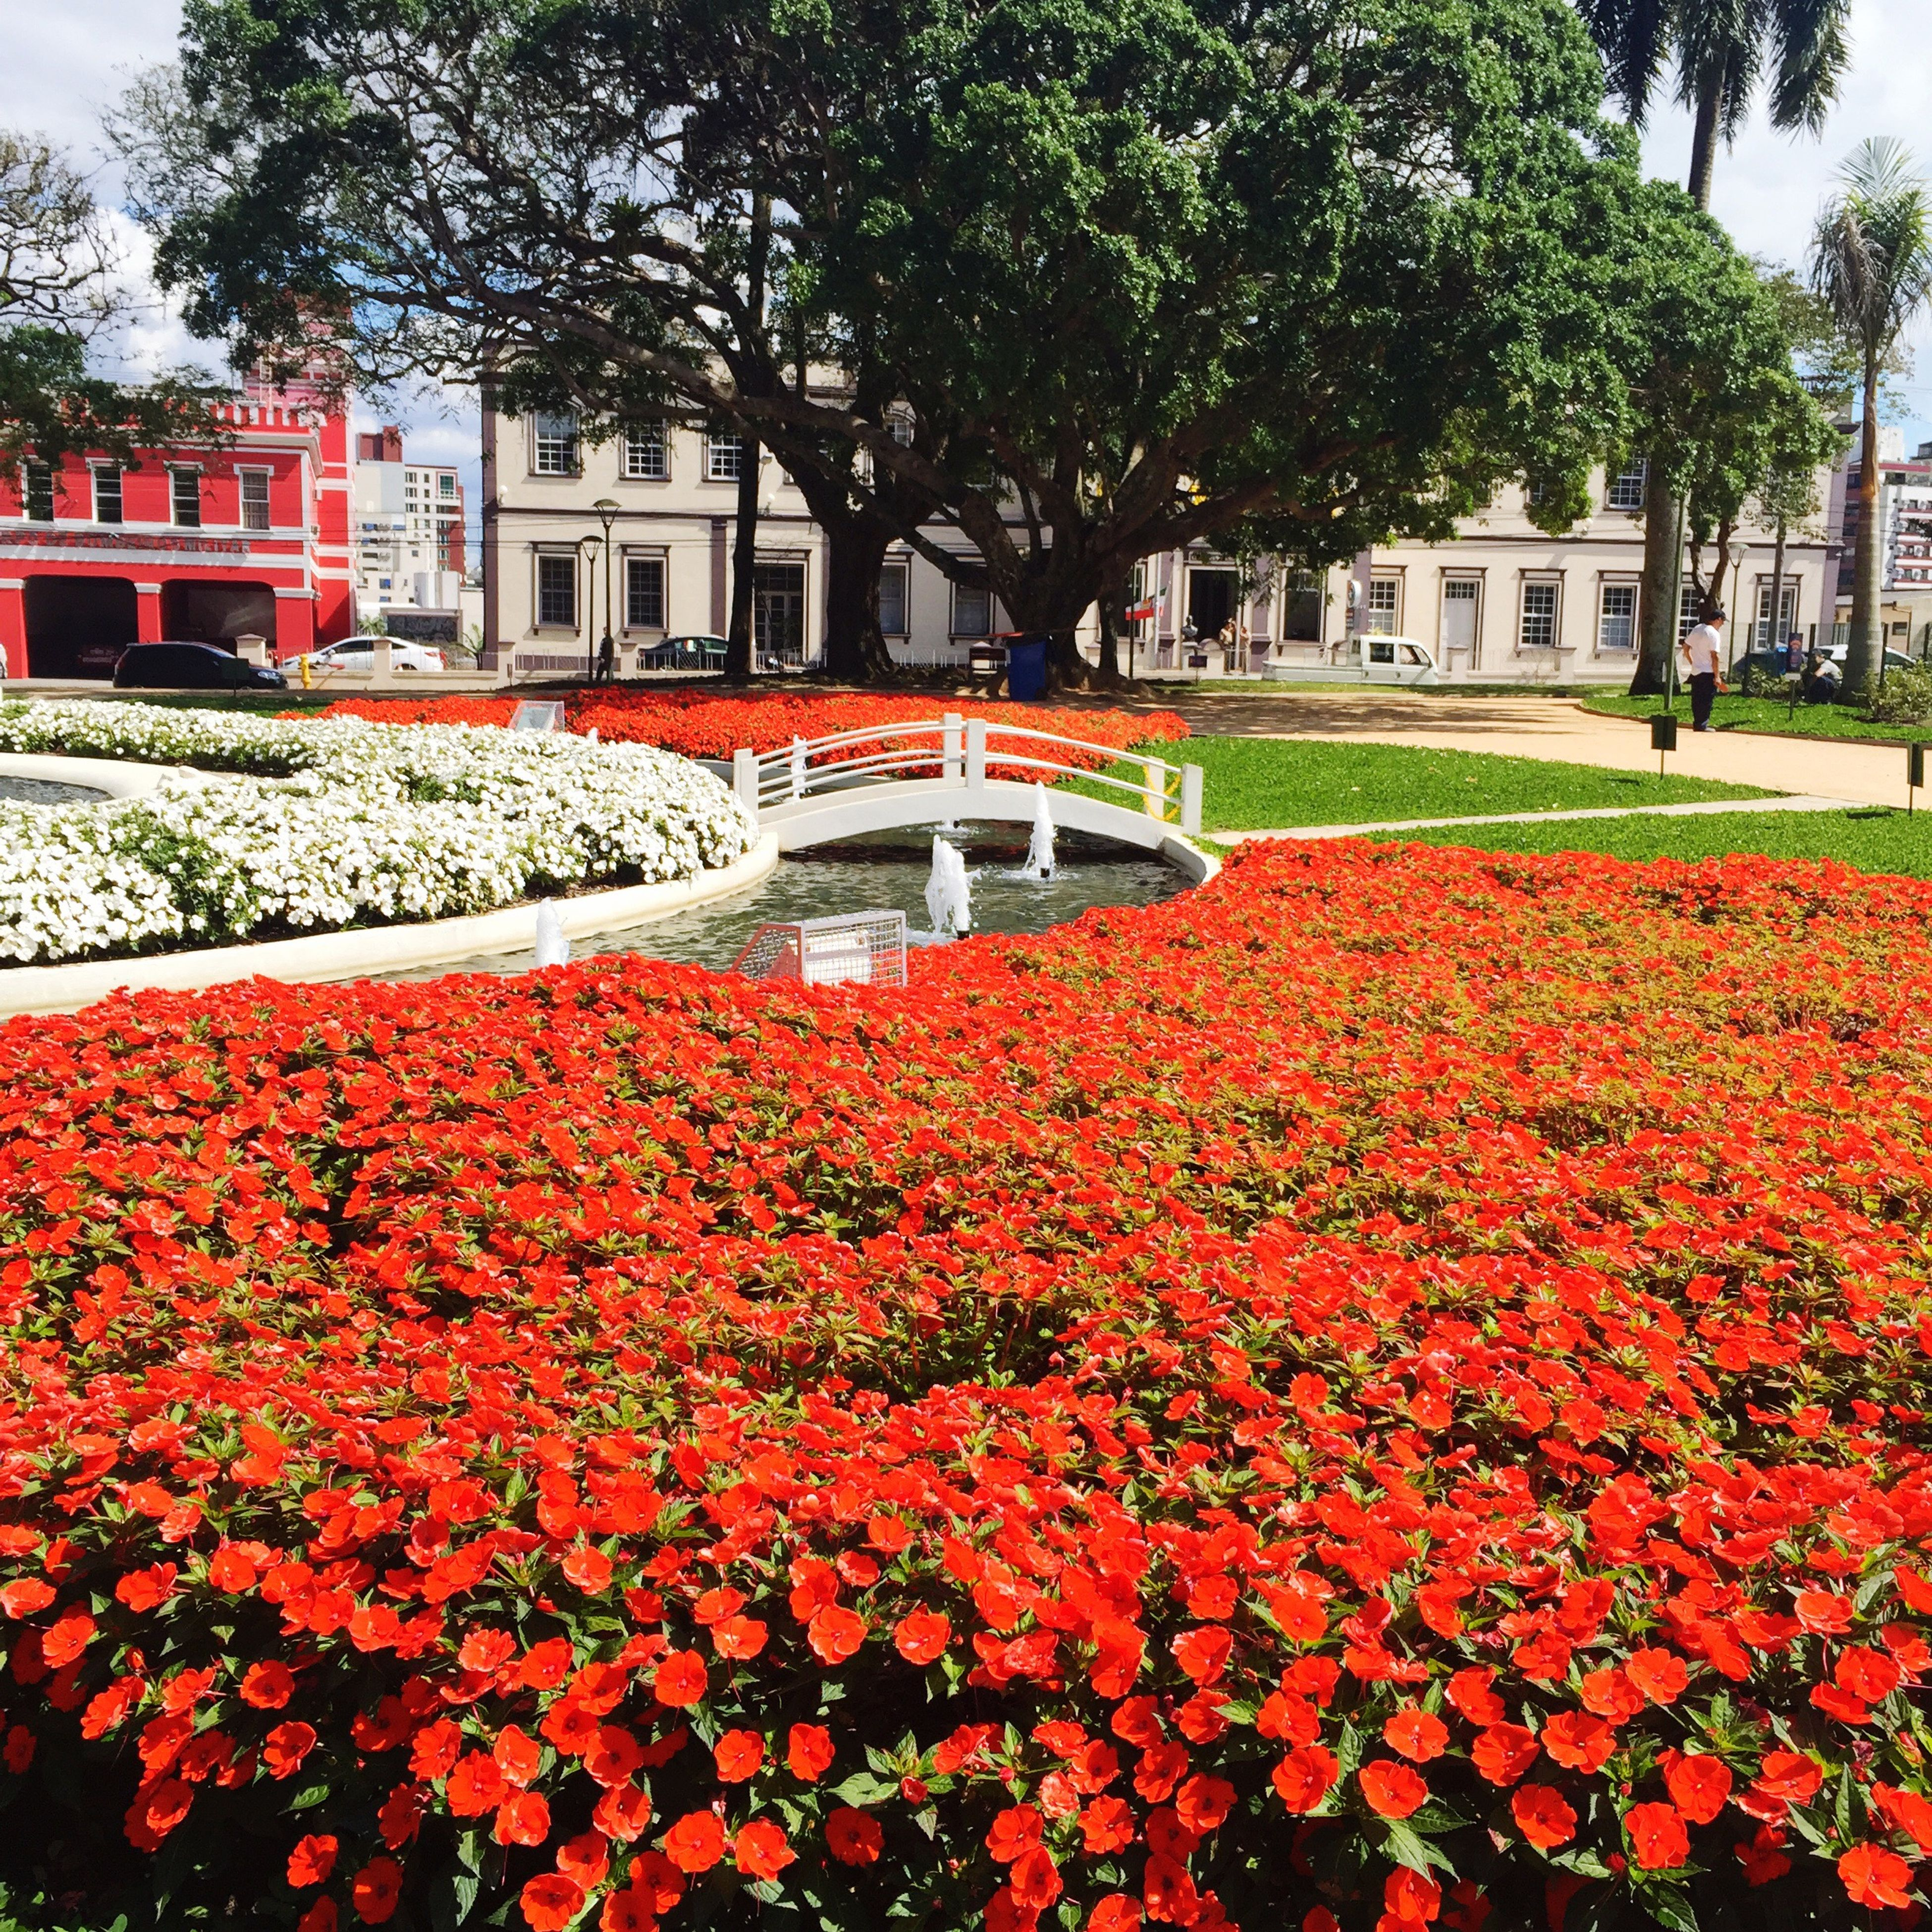 flower, red, architecture, building exterior, built structure, freshness, fragility, growth, flowerbed, abundance, day, beauty in nature, outdoors, nature, multi colored, flower bed, vibrant color, no people, springtime, red color, petal